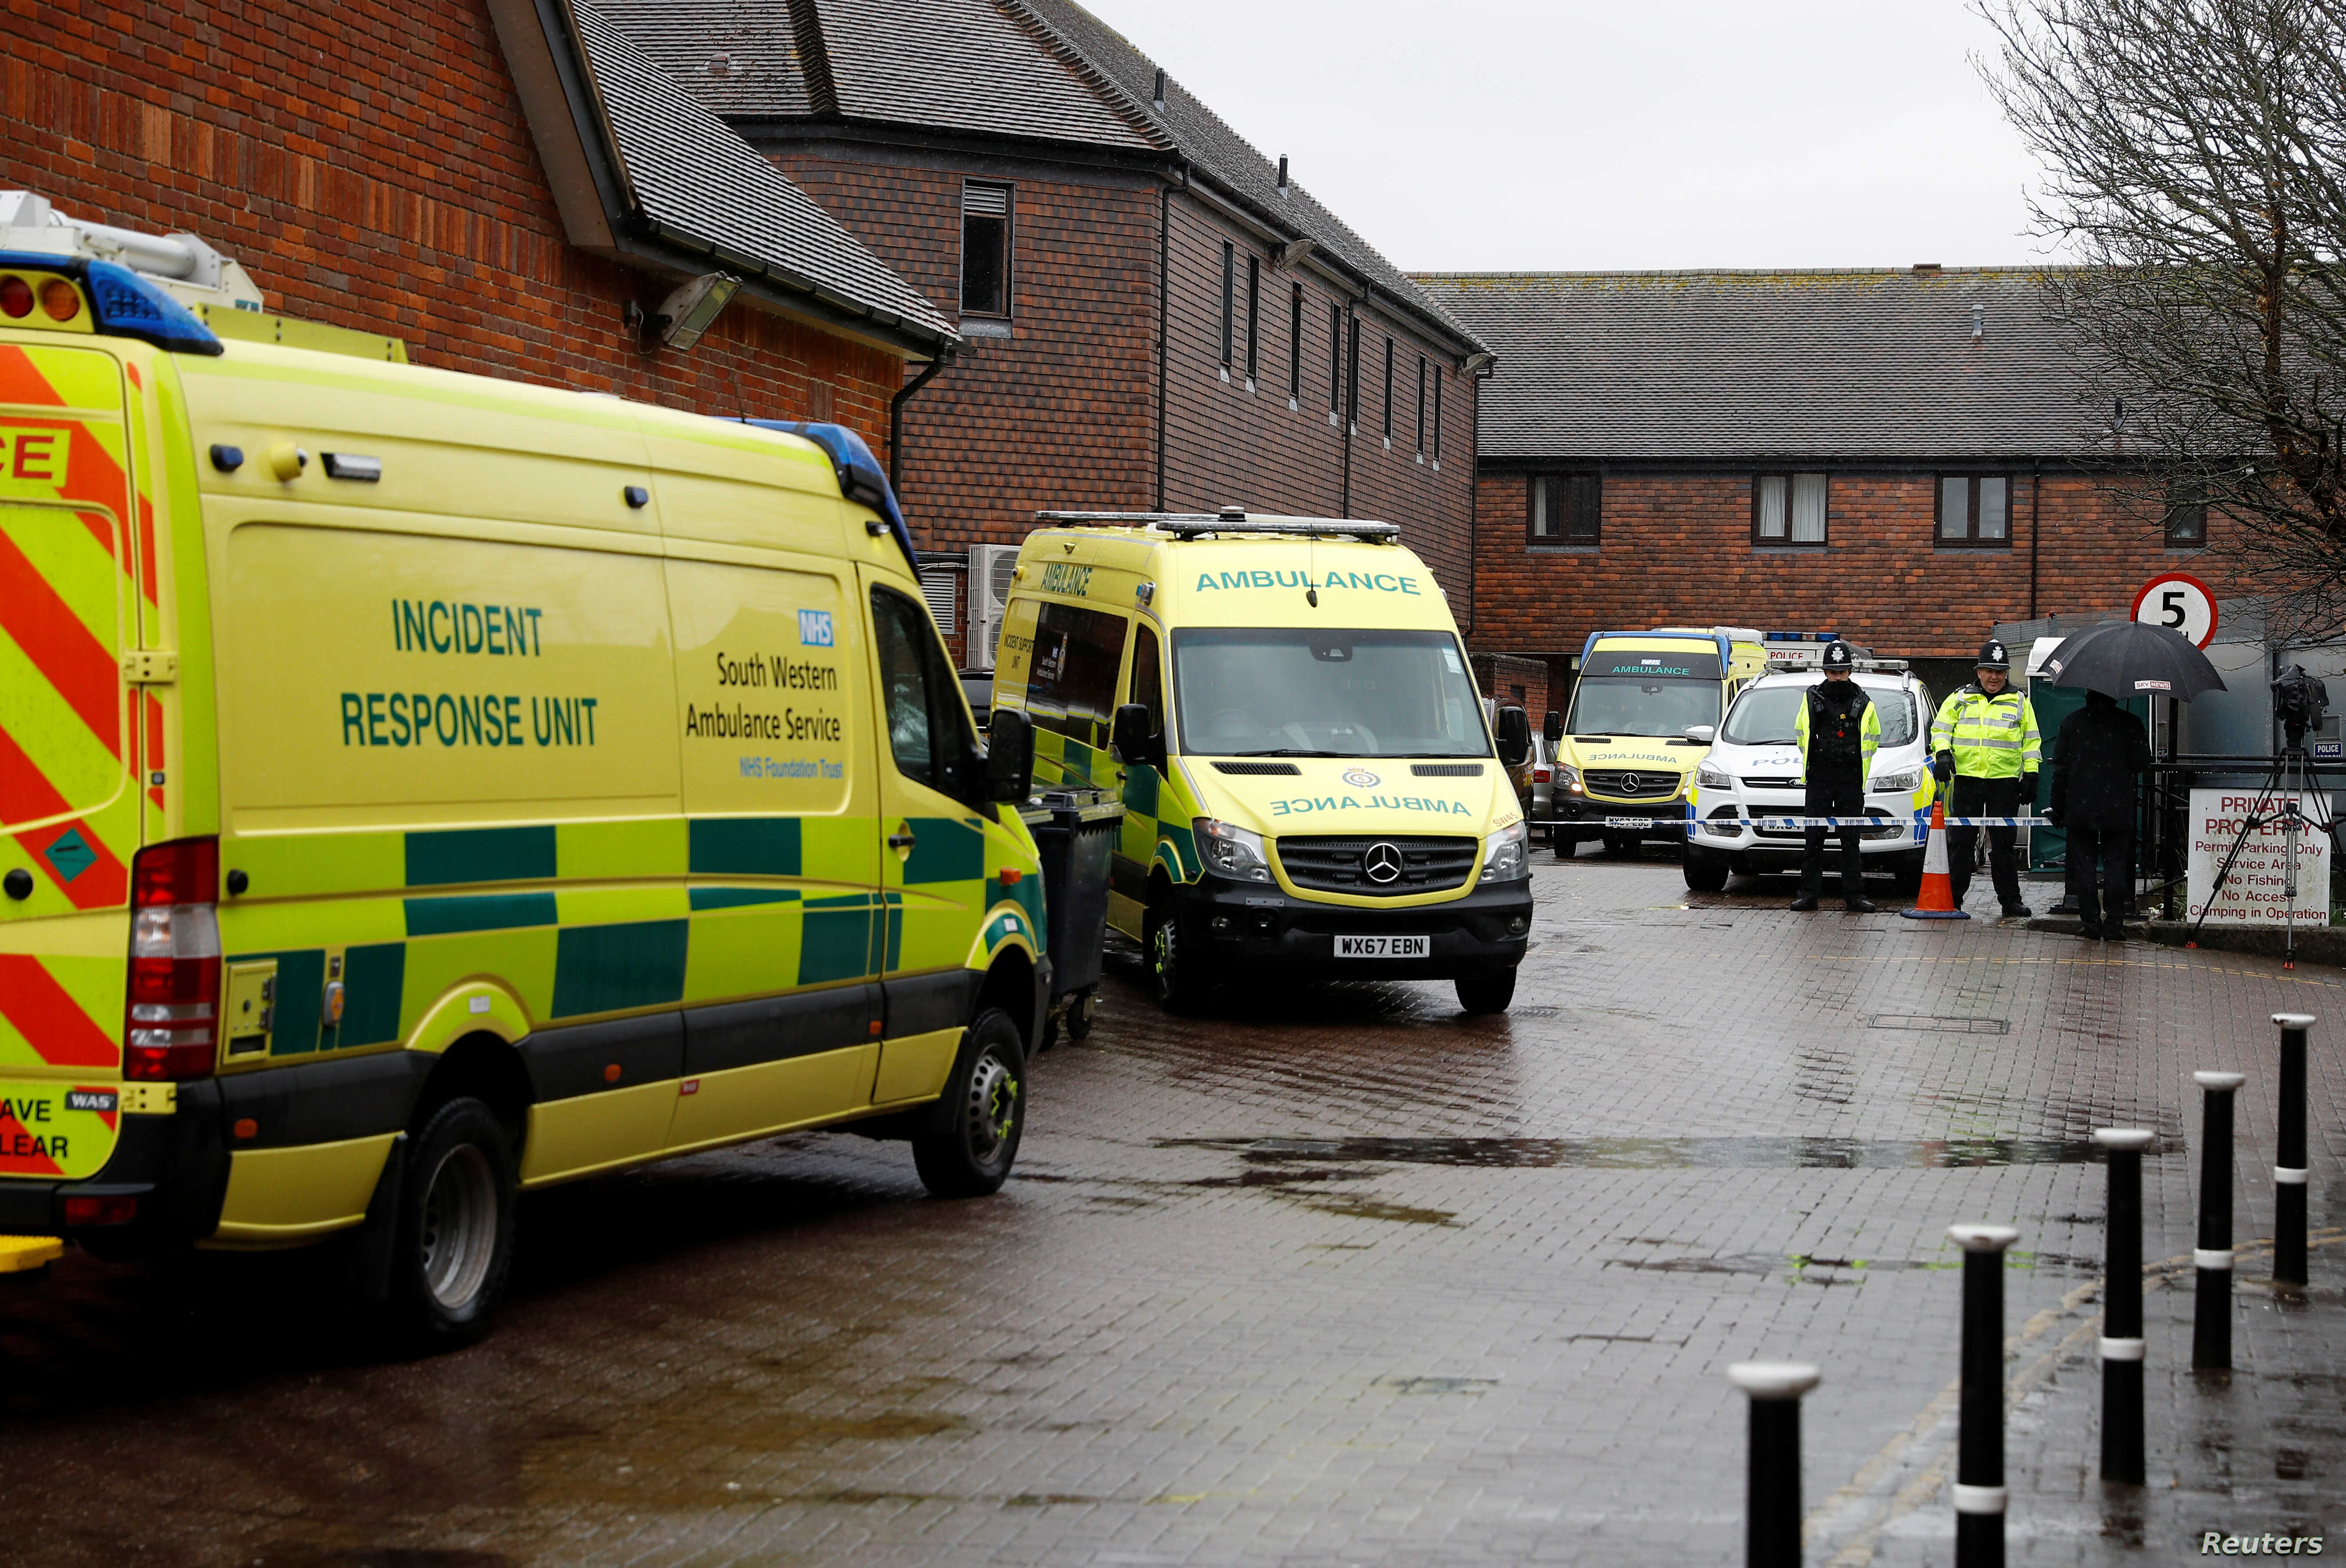 Emergency services vehicles are parked behind a pub that was visited by former Russian intelligence officer Sergei Skripal and his daughter Yulia before they found poisoned; and which remains closed; in Salisbury, Britain, March 28, 2018.